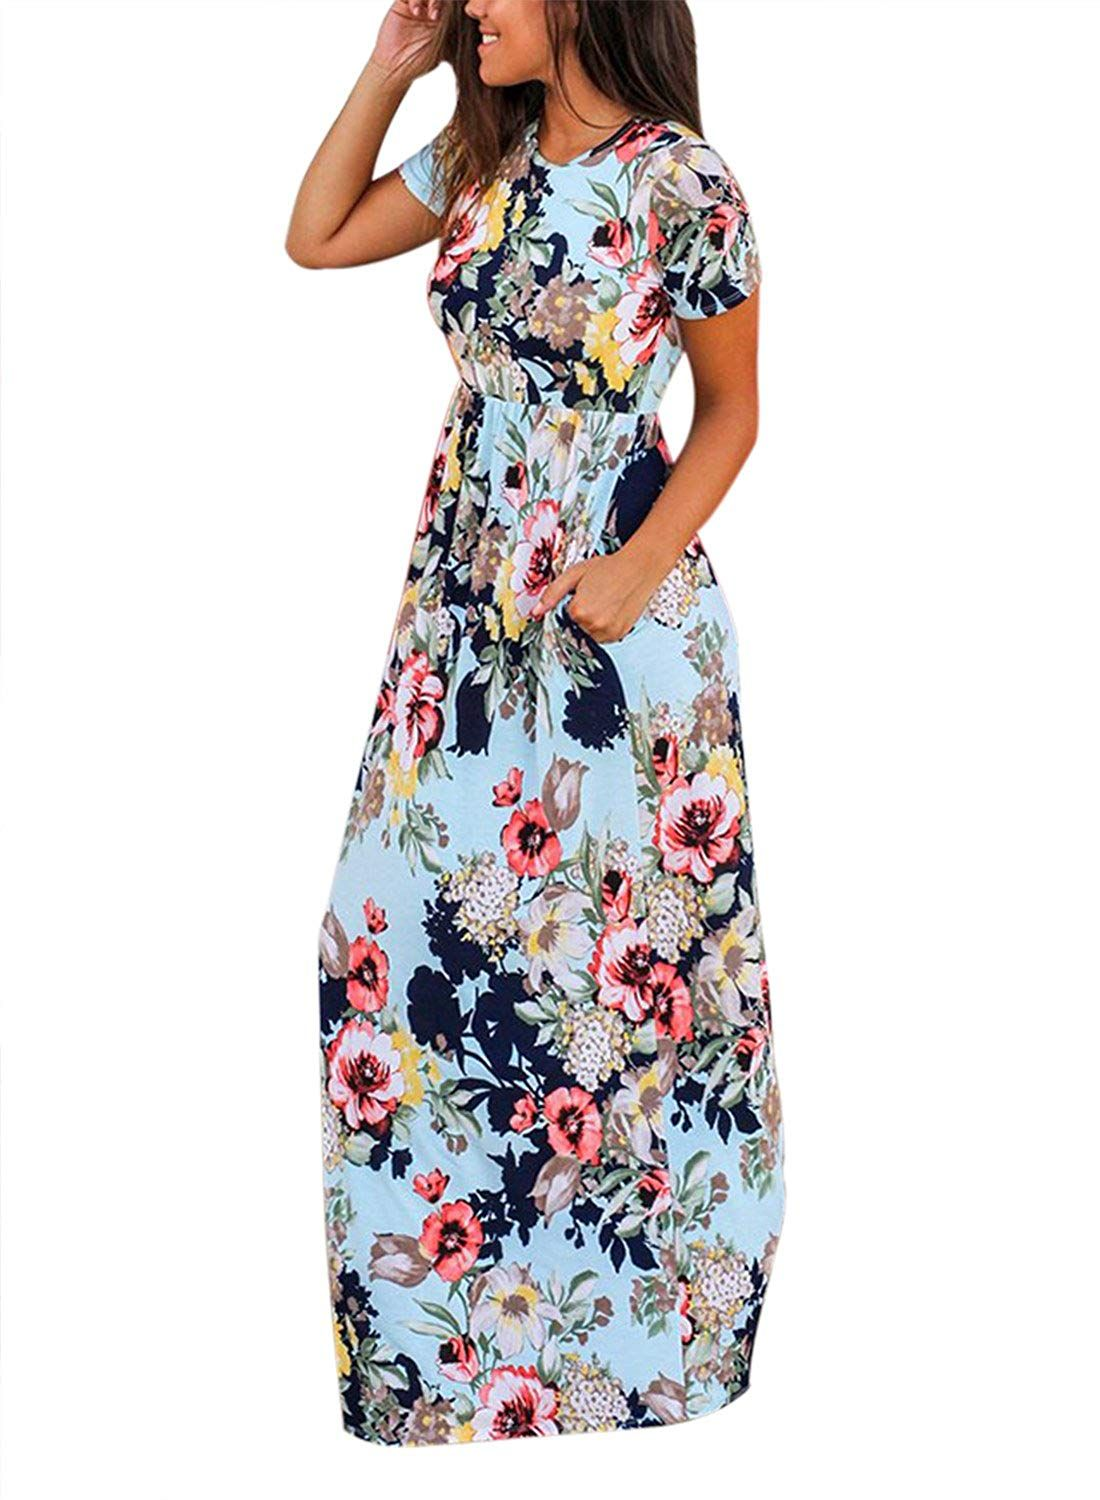 b0e6af093 HOTAPEI Womens Floral Print Long Dress Short Sleeve Empire Flower Maxi  Dresses at Amazon Womens Clothing store, Amazon Affiliate link.